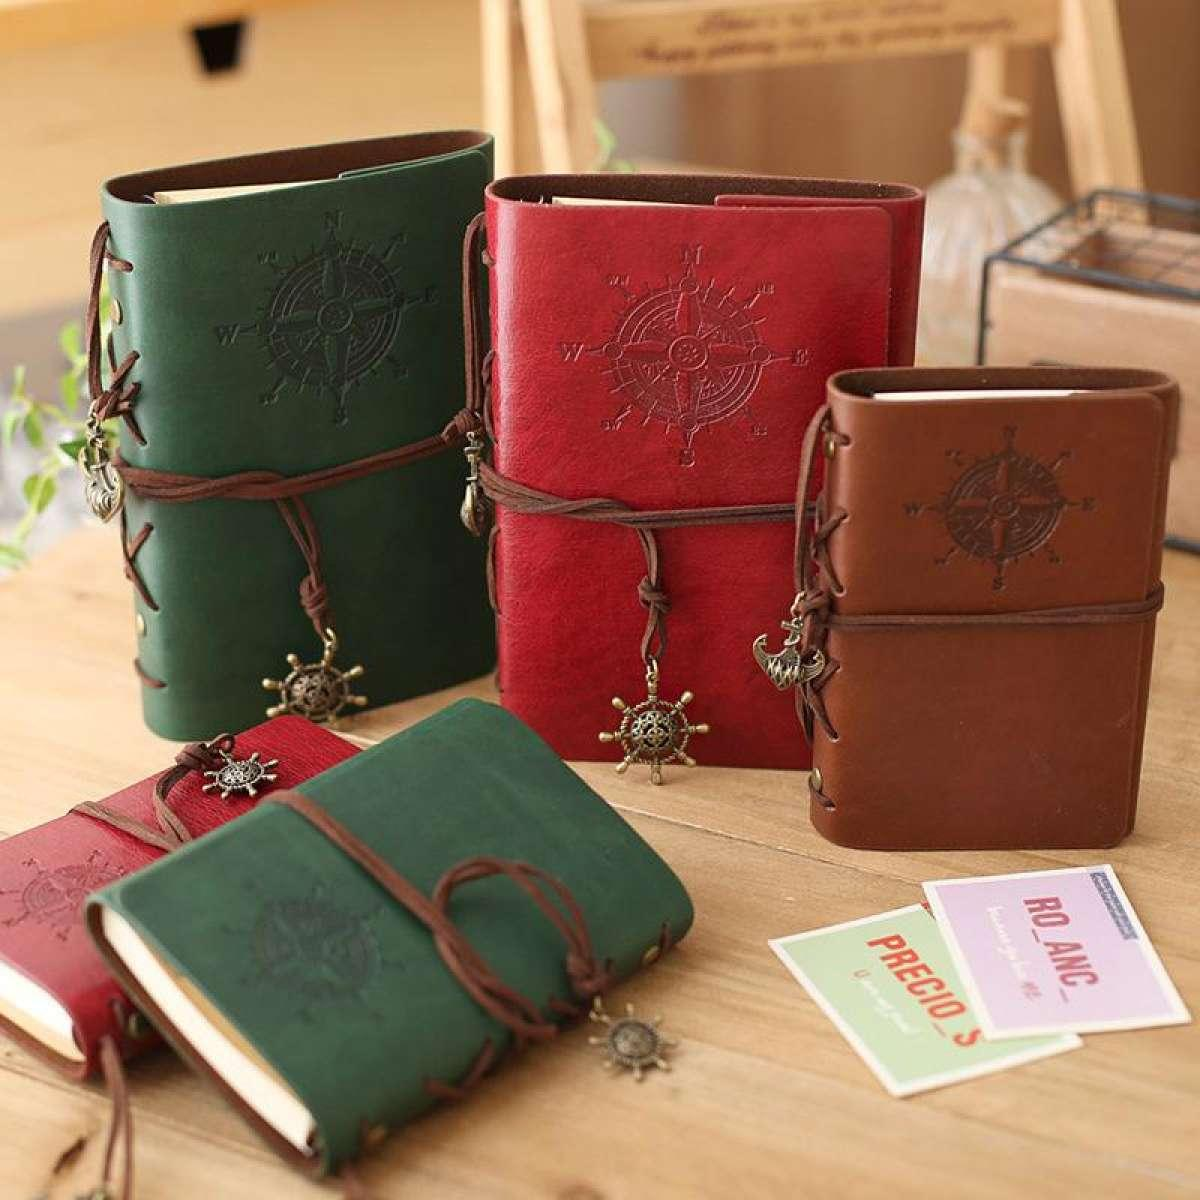 Better Shop Leather Book Bonbon Shop By Better Shop.